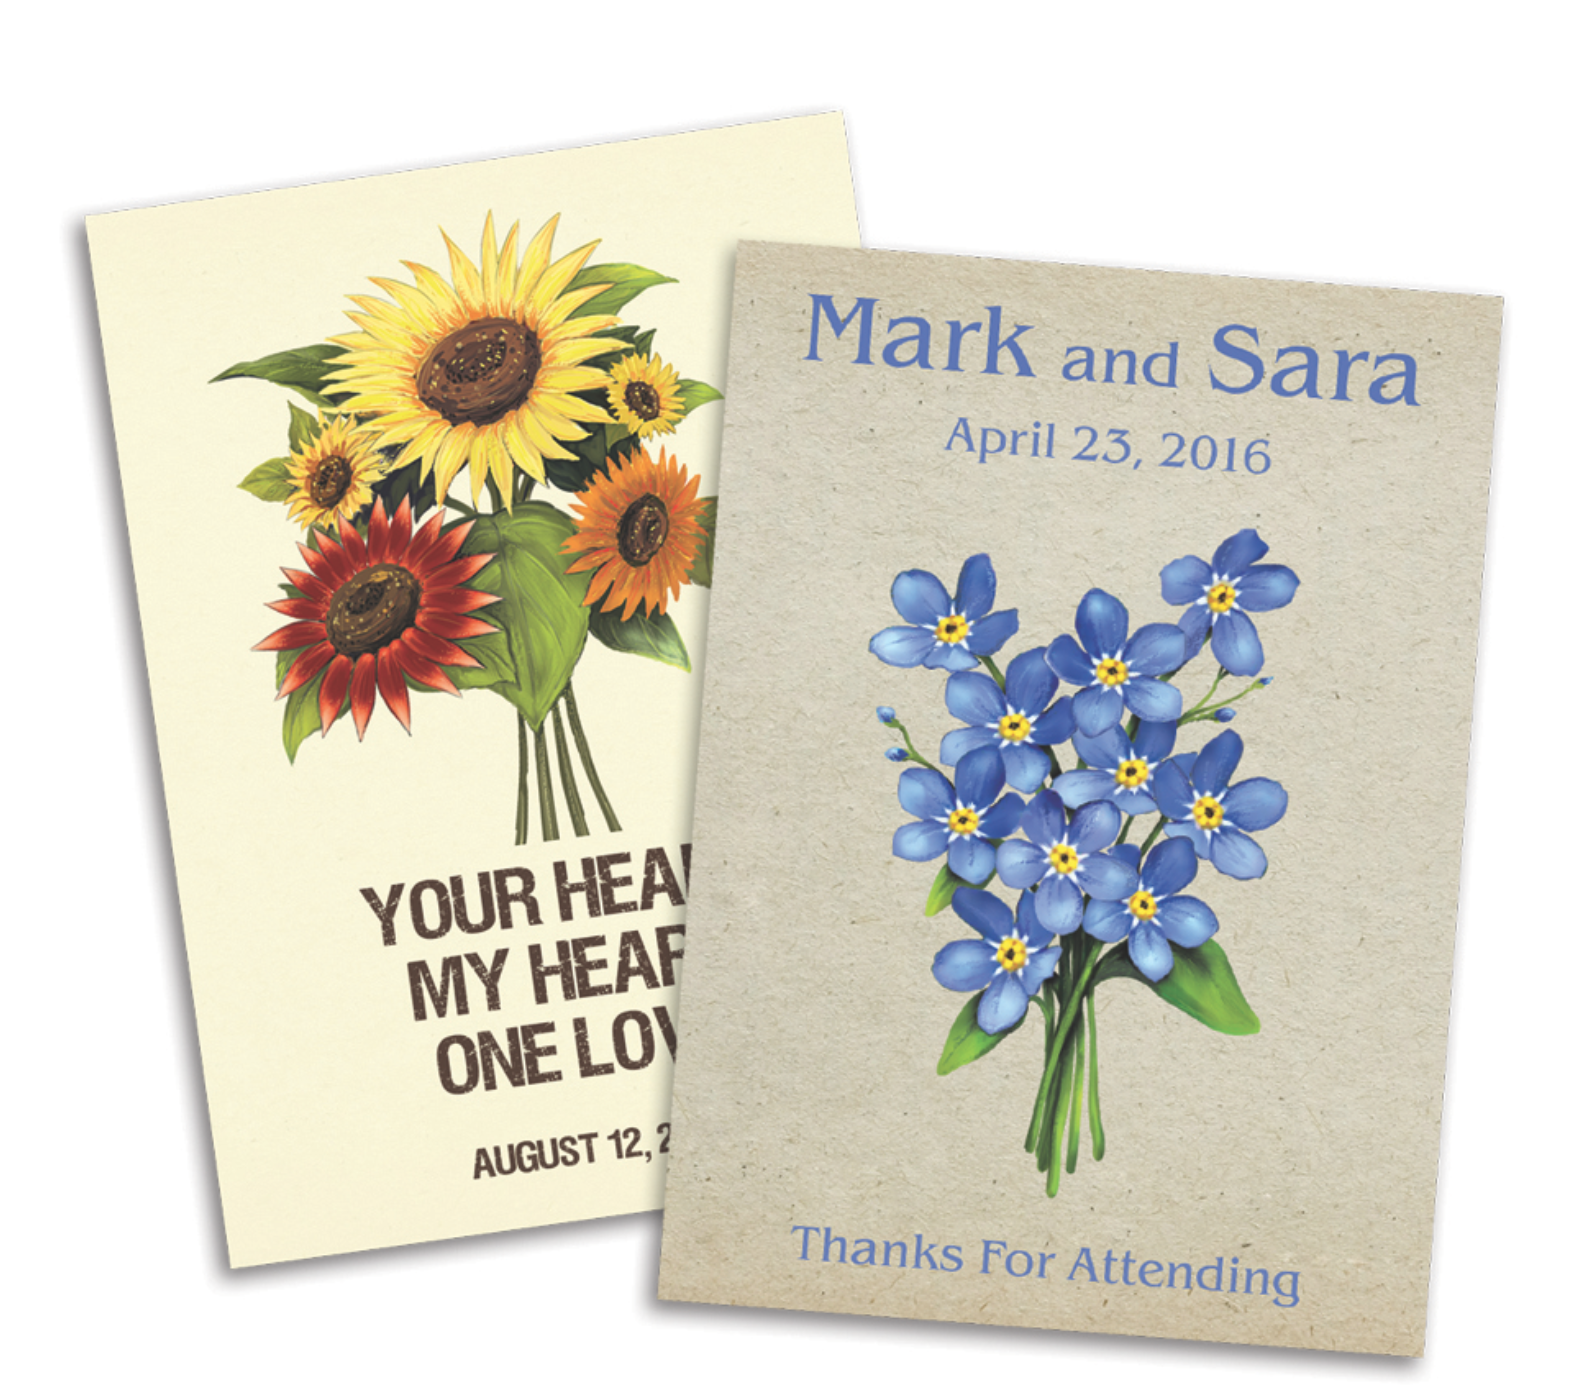 Customized Seed Packets by Seed Needs Personalize your